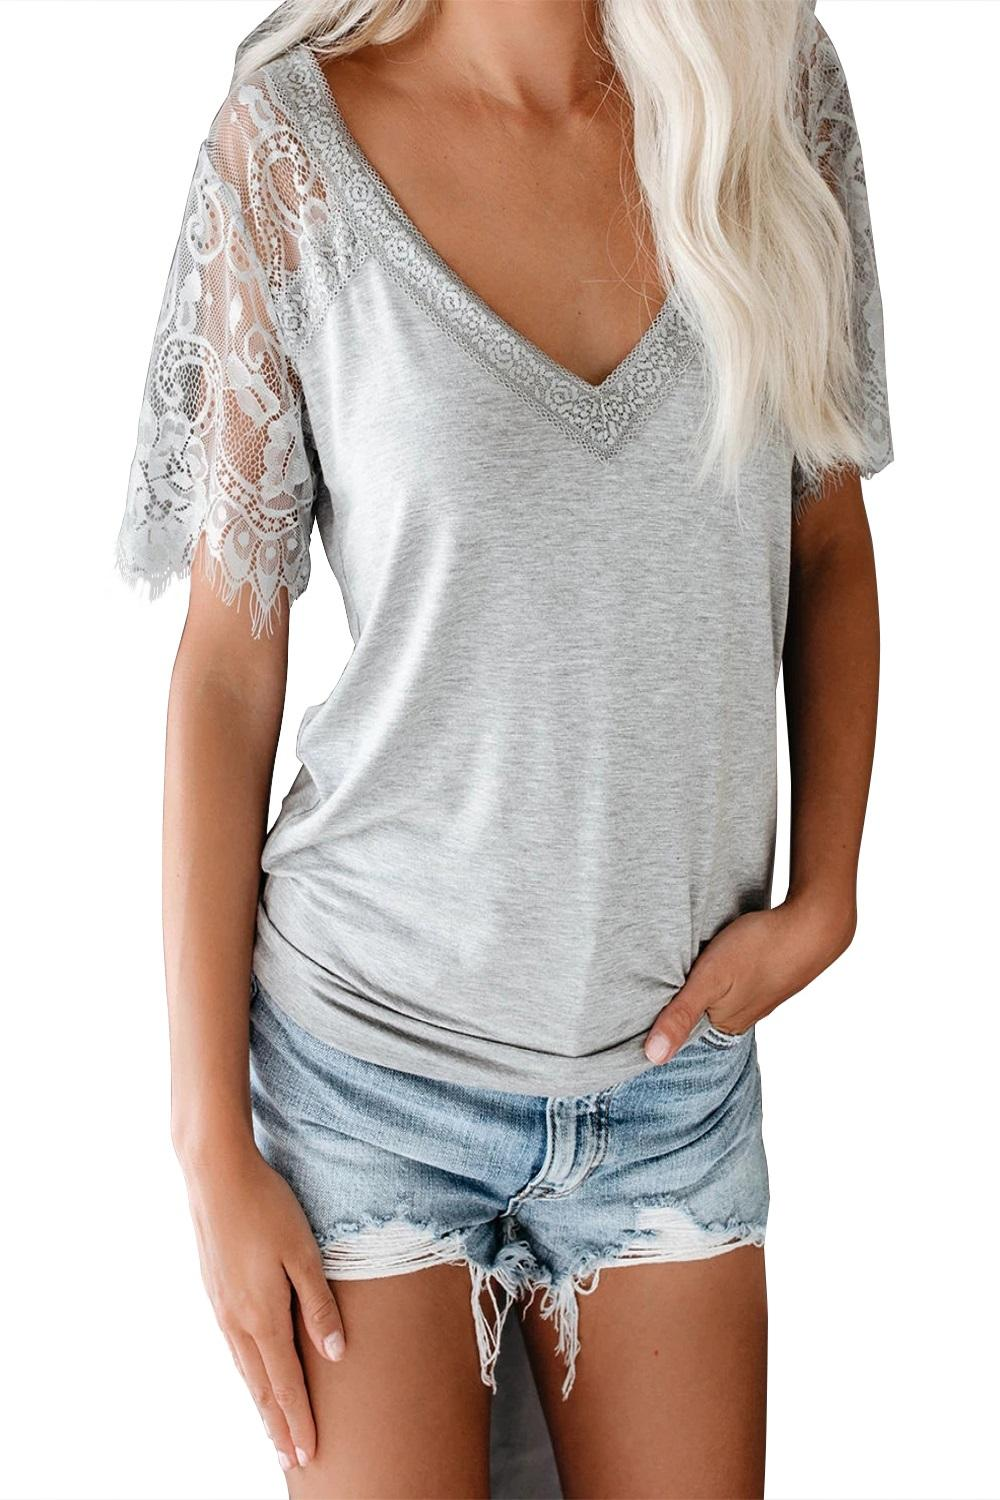 Gray Sweet Side Lace Deep V Neck Top T-shirt